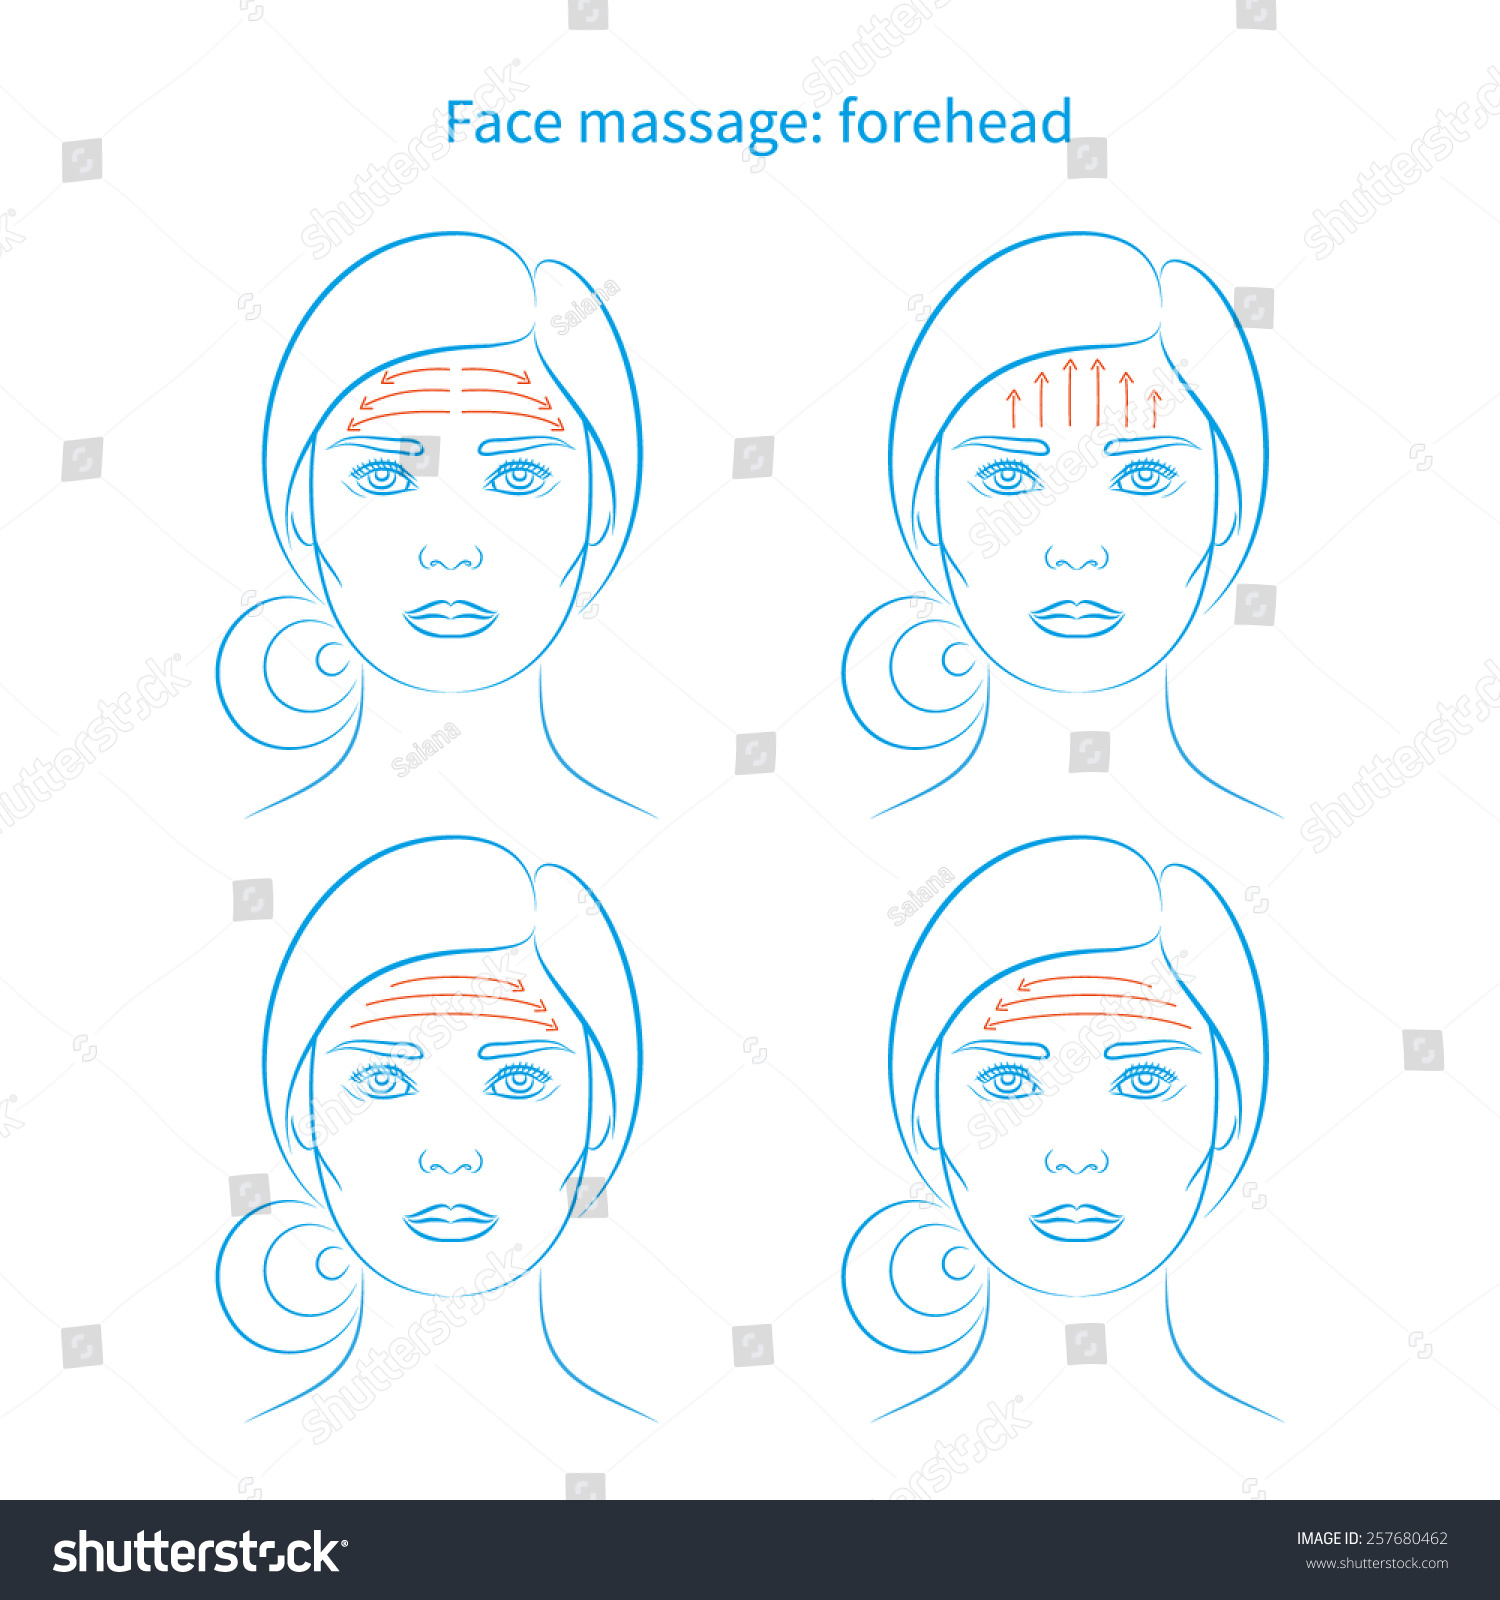 Royalty Free Vector Illustration Set Of Four Face 257680462 Stock